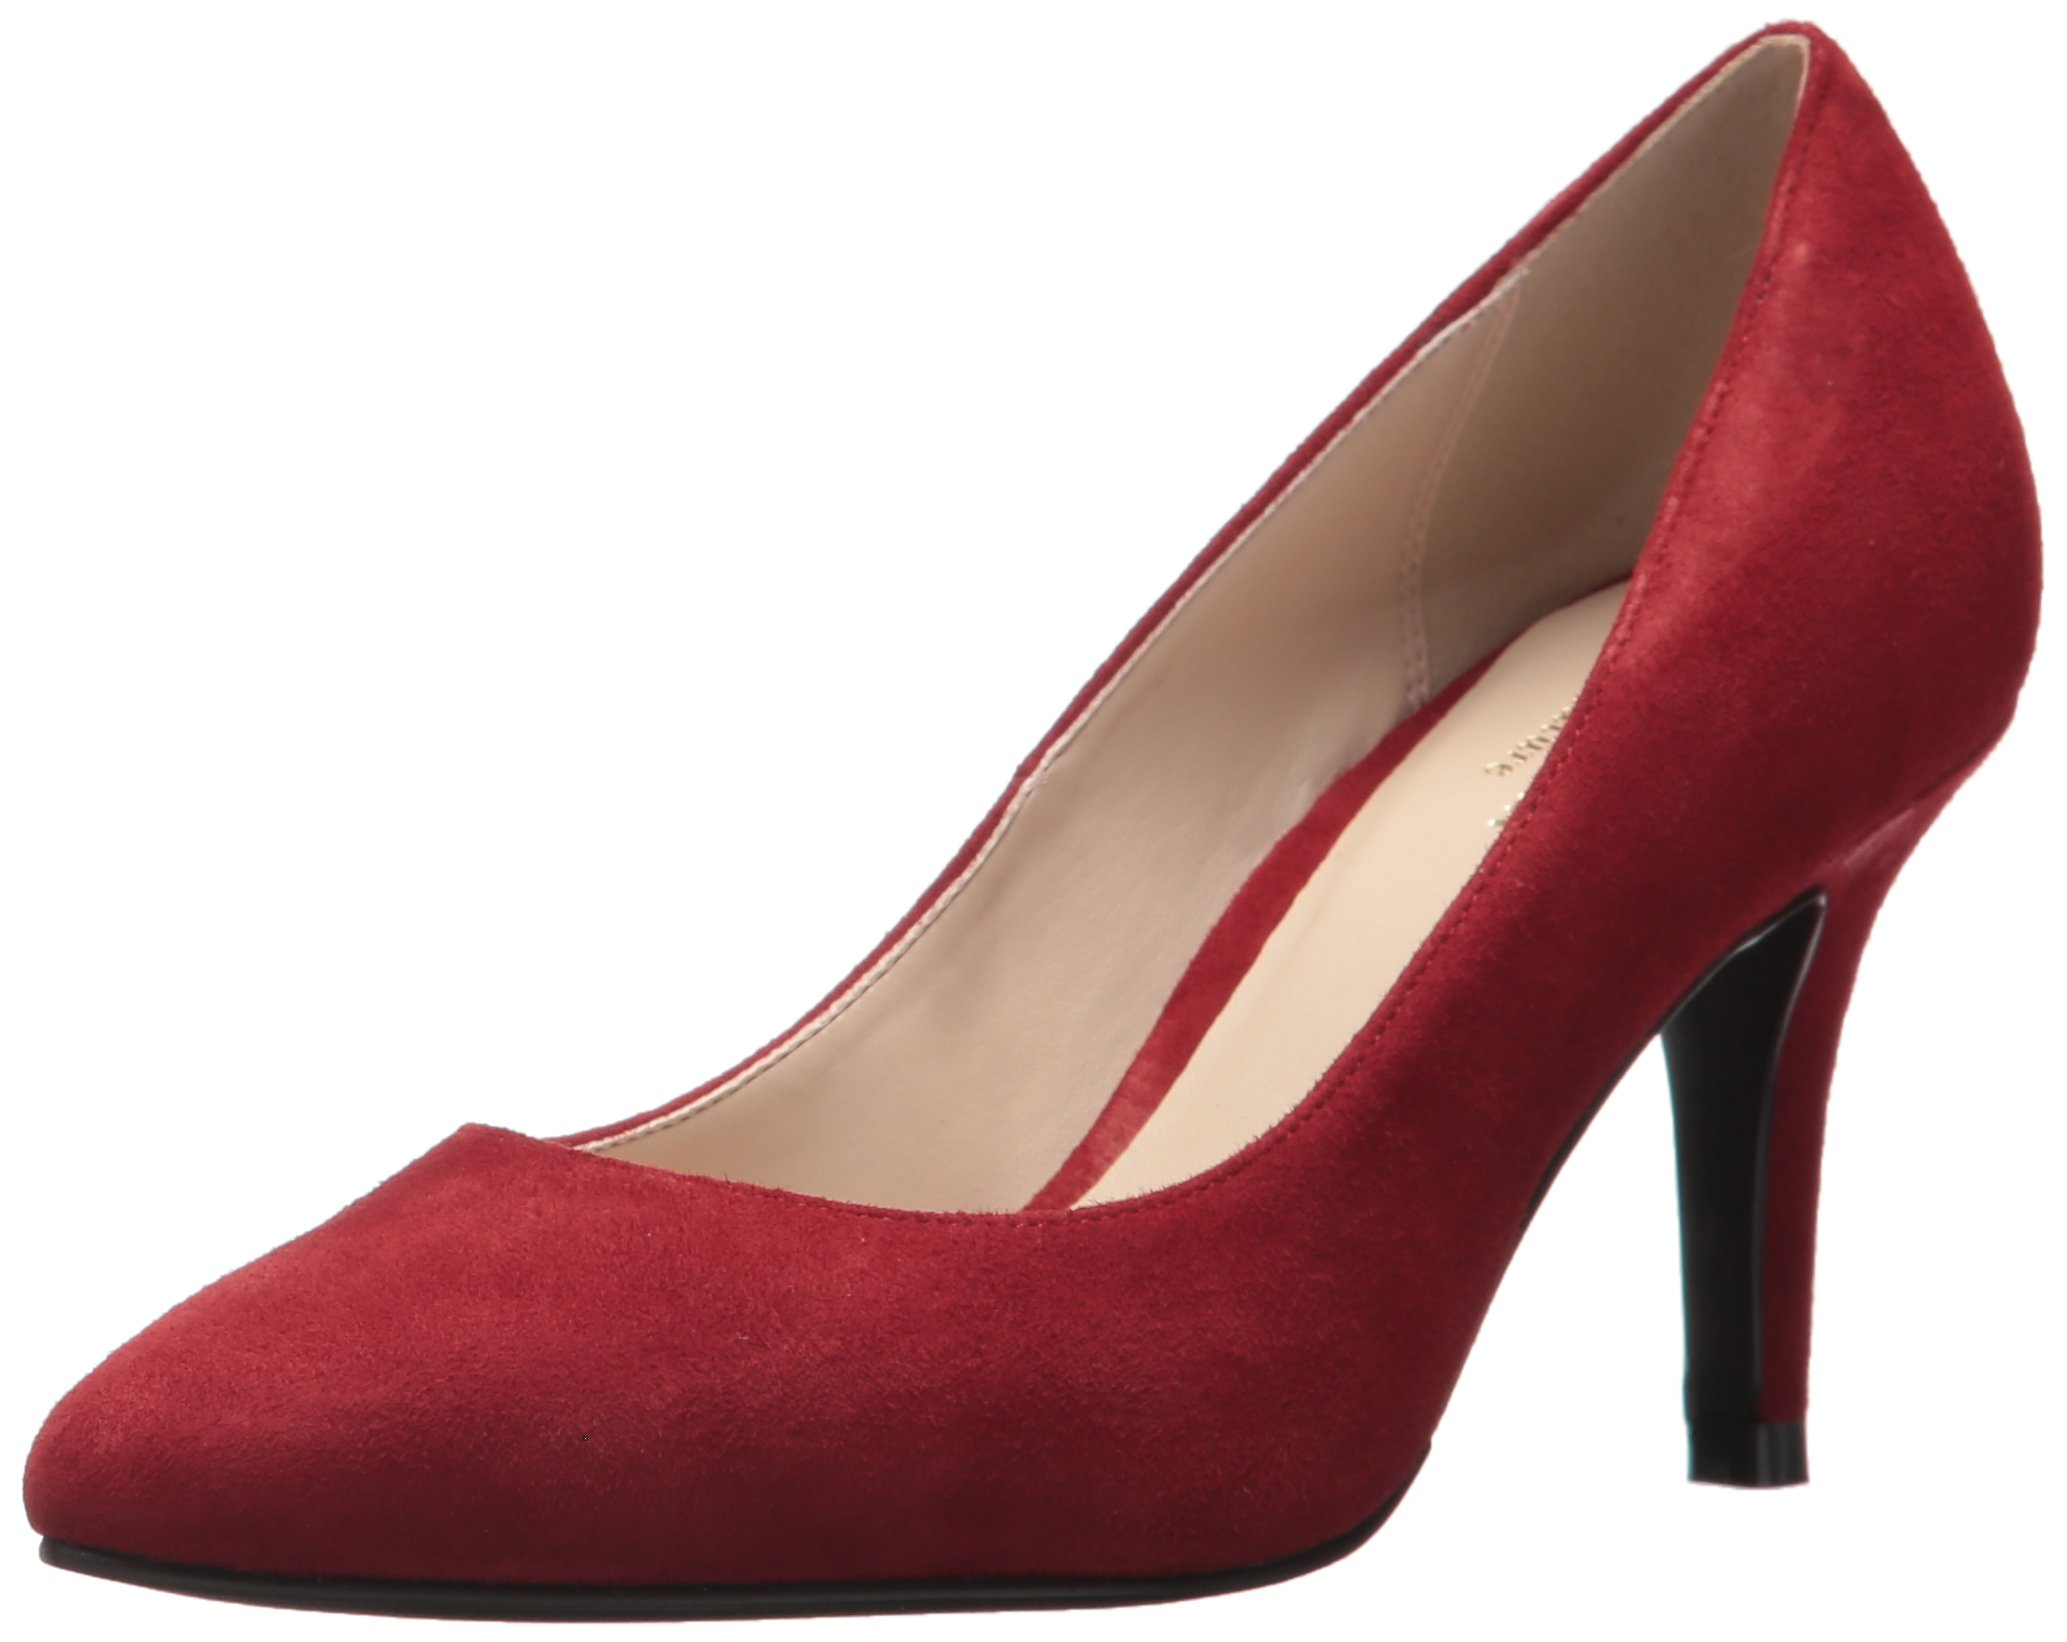 Cole Haan Women's Juliana 75 Pump, Bordeaux Suede, 8.5 B US